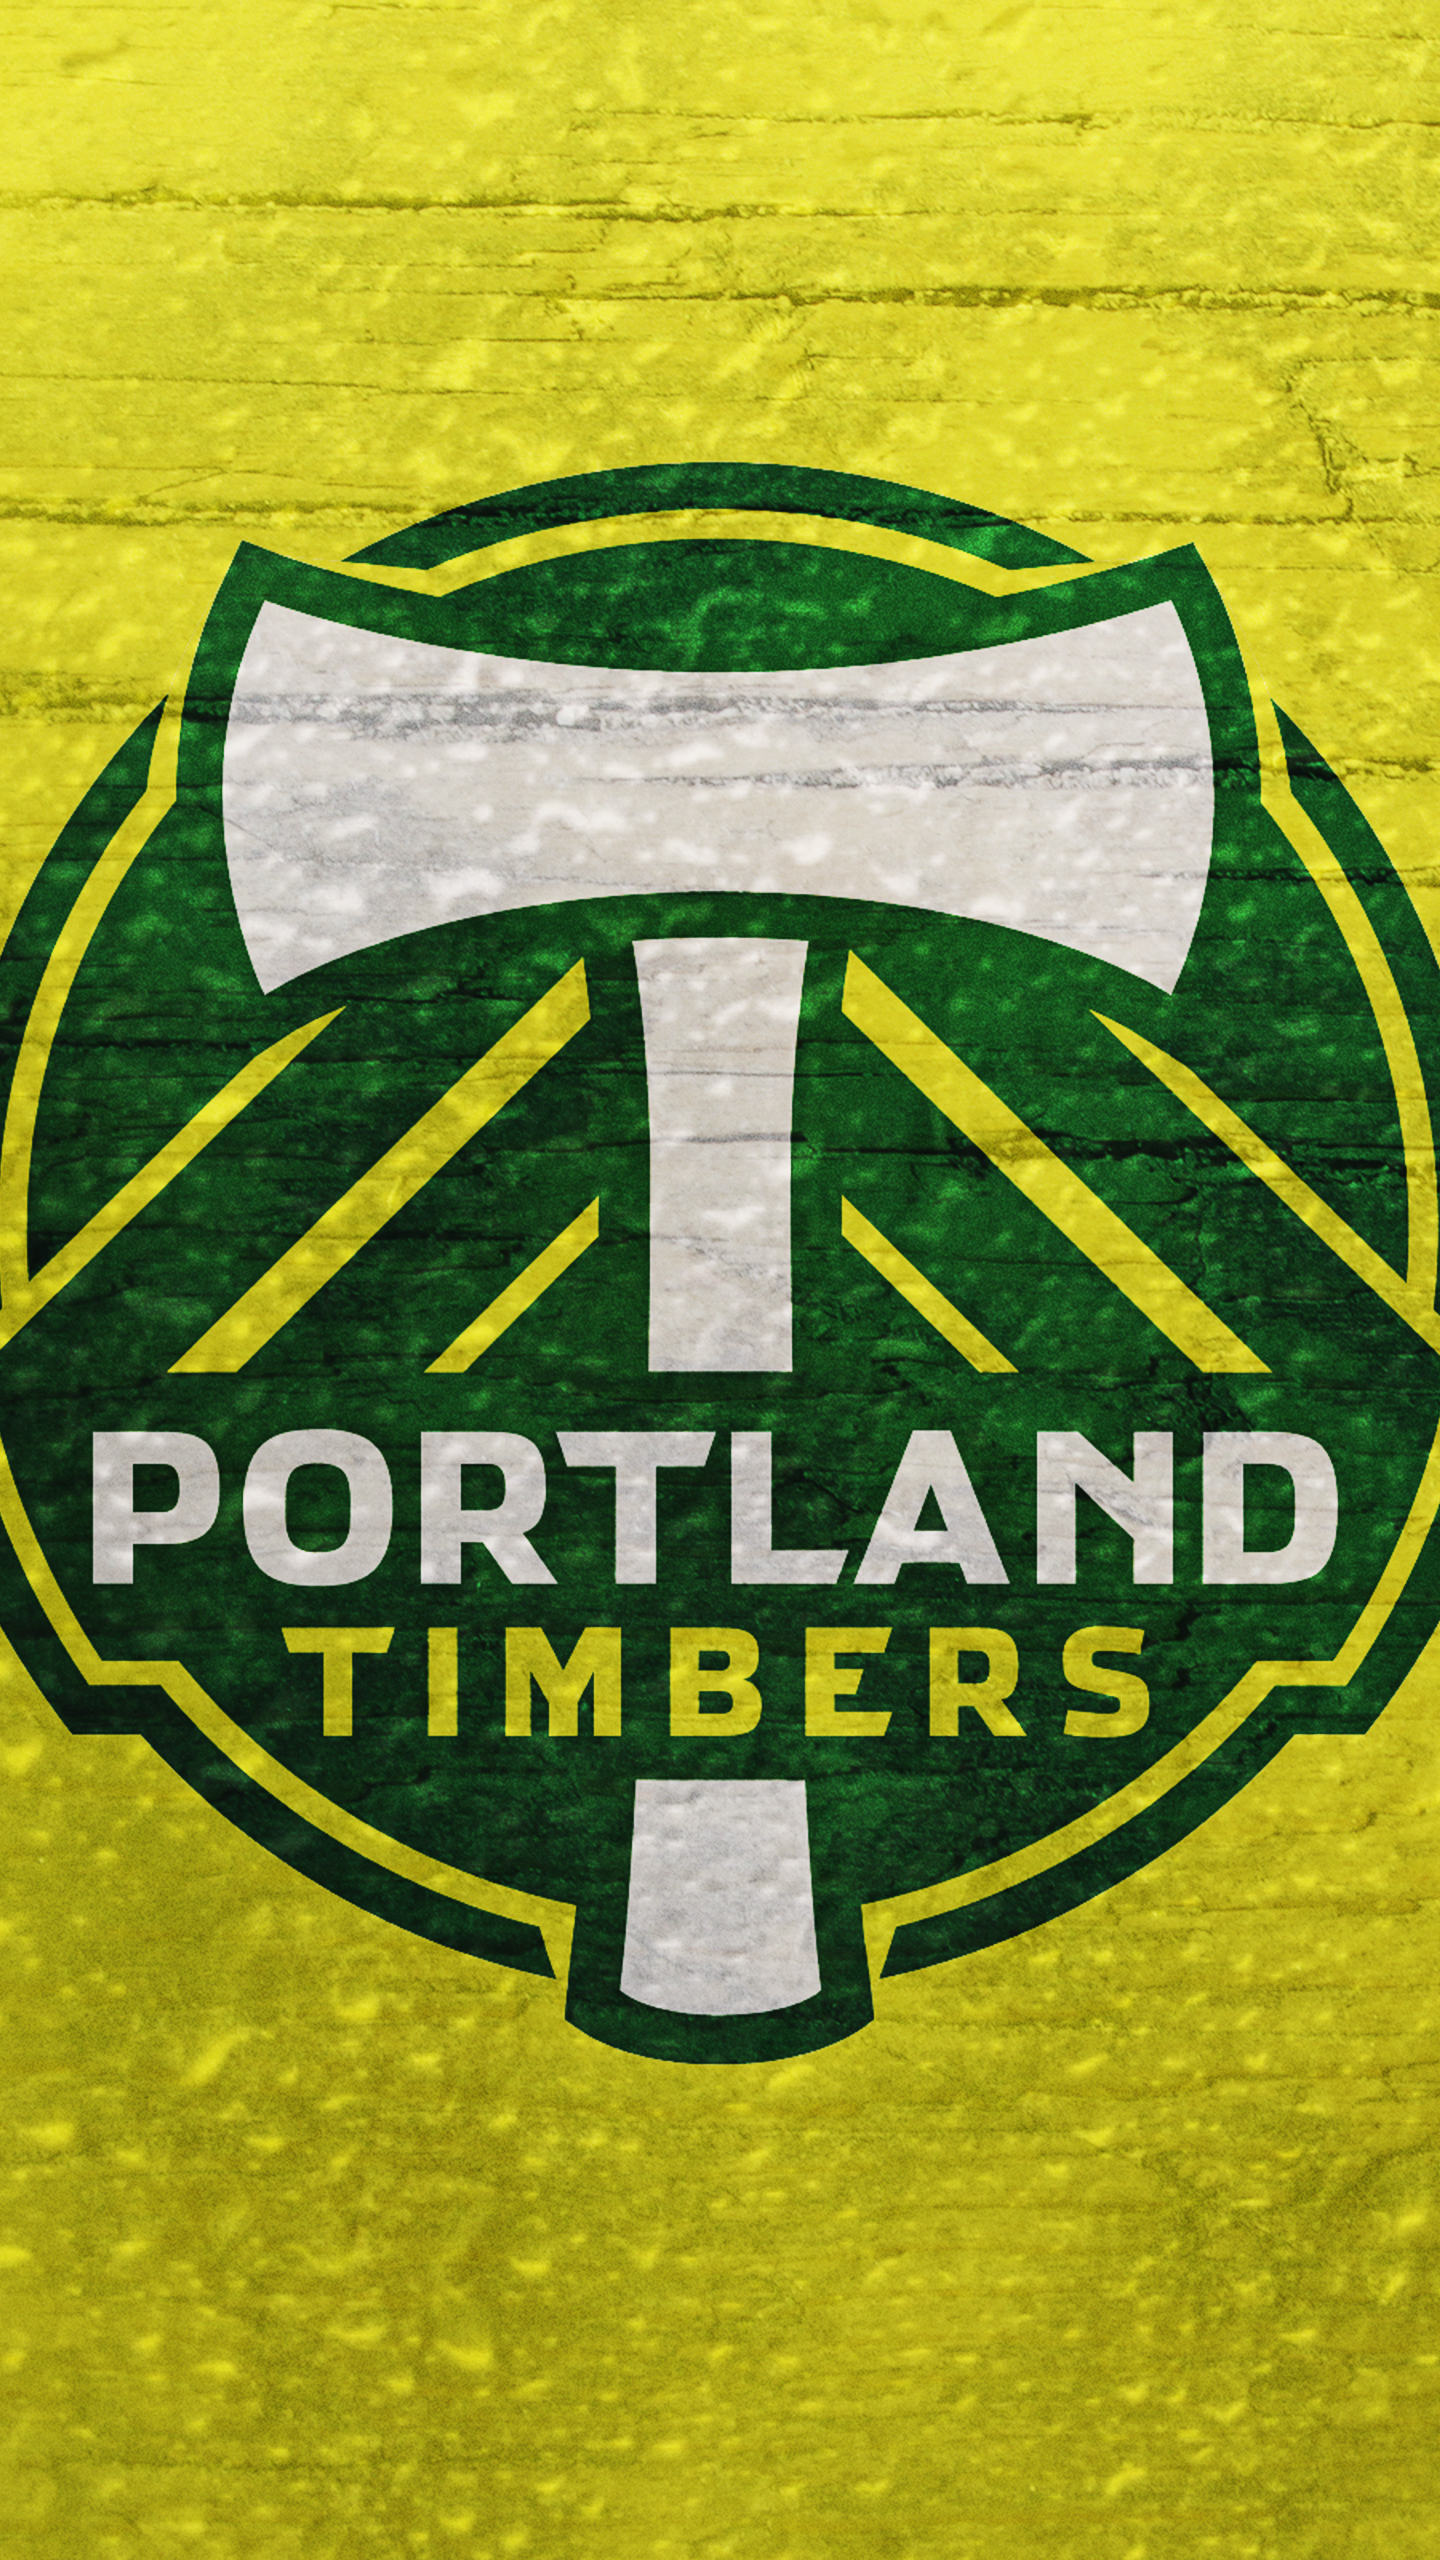 1440x2560 - Portland Timbers Wallpapers 4